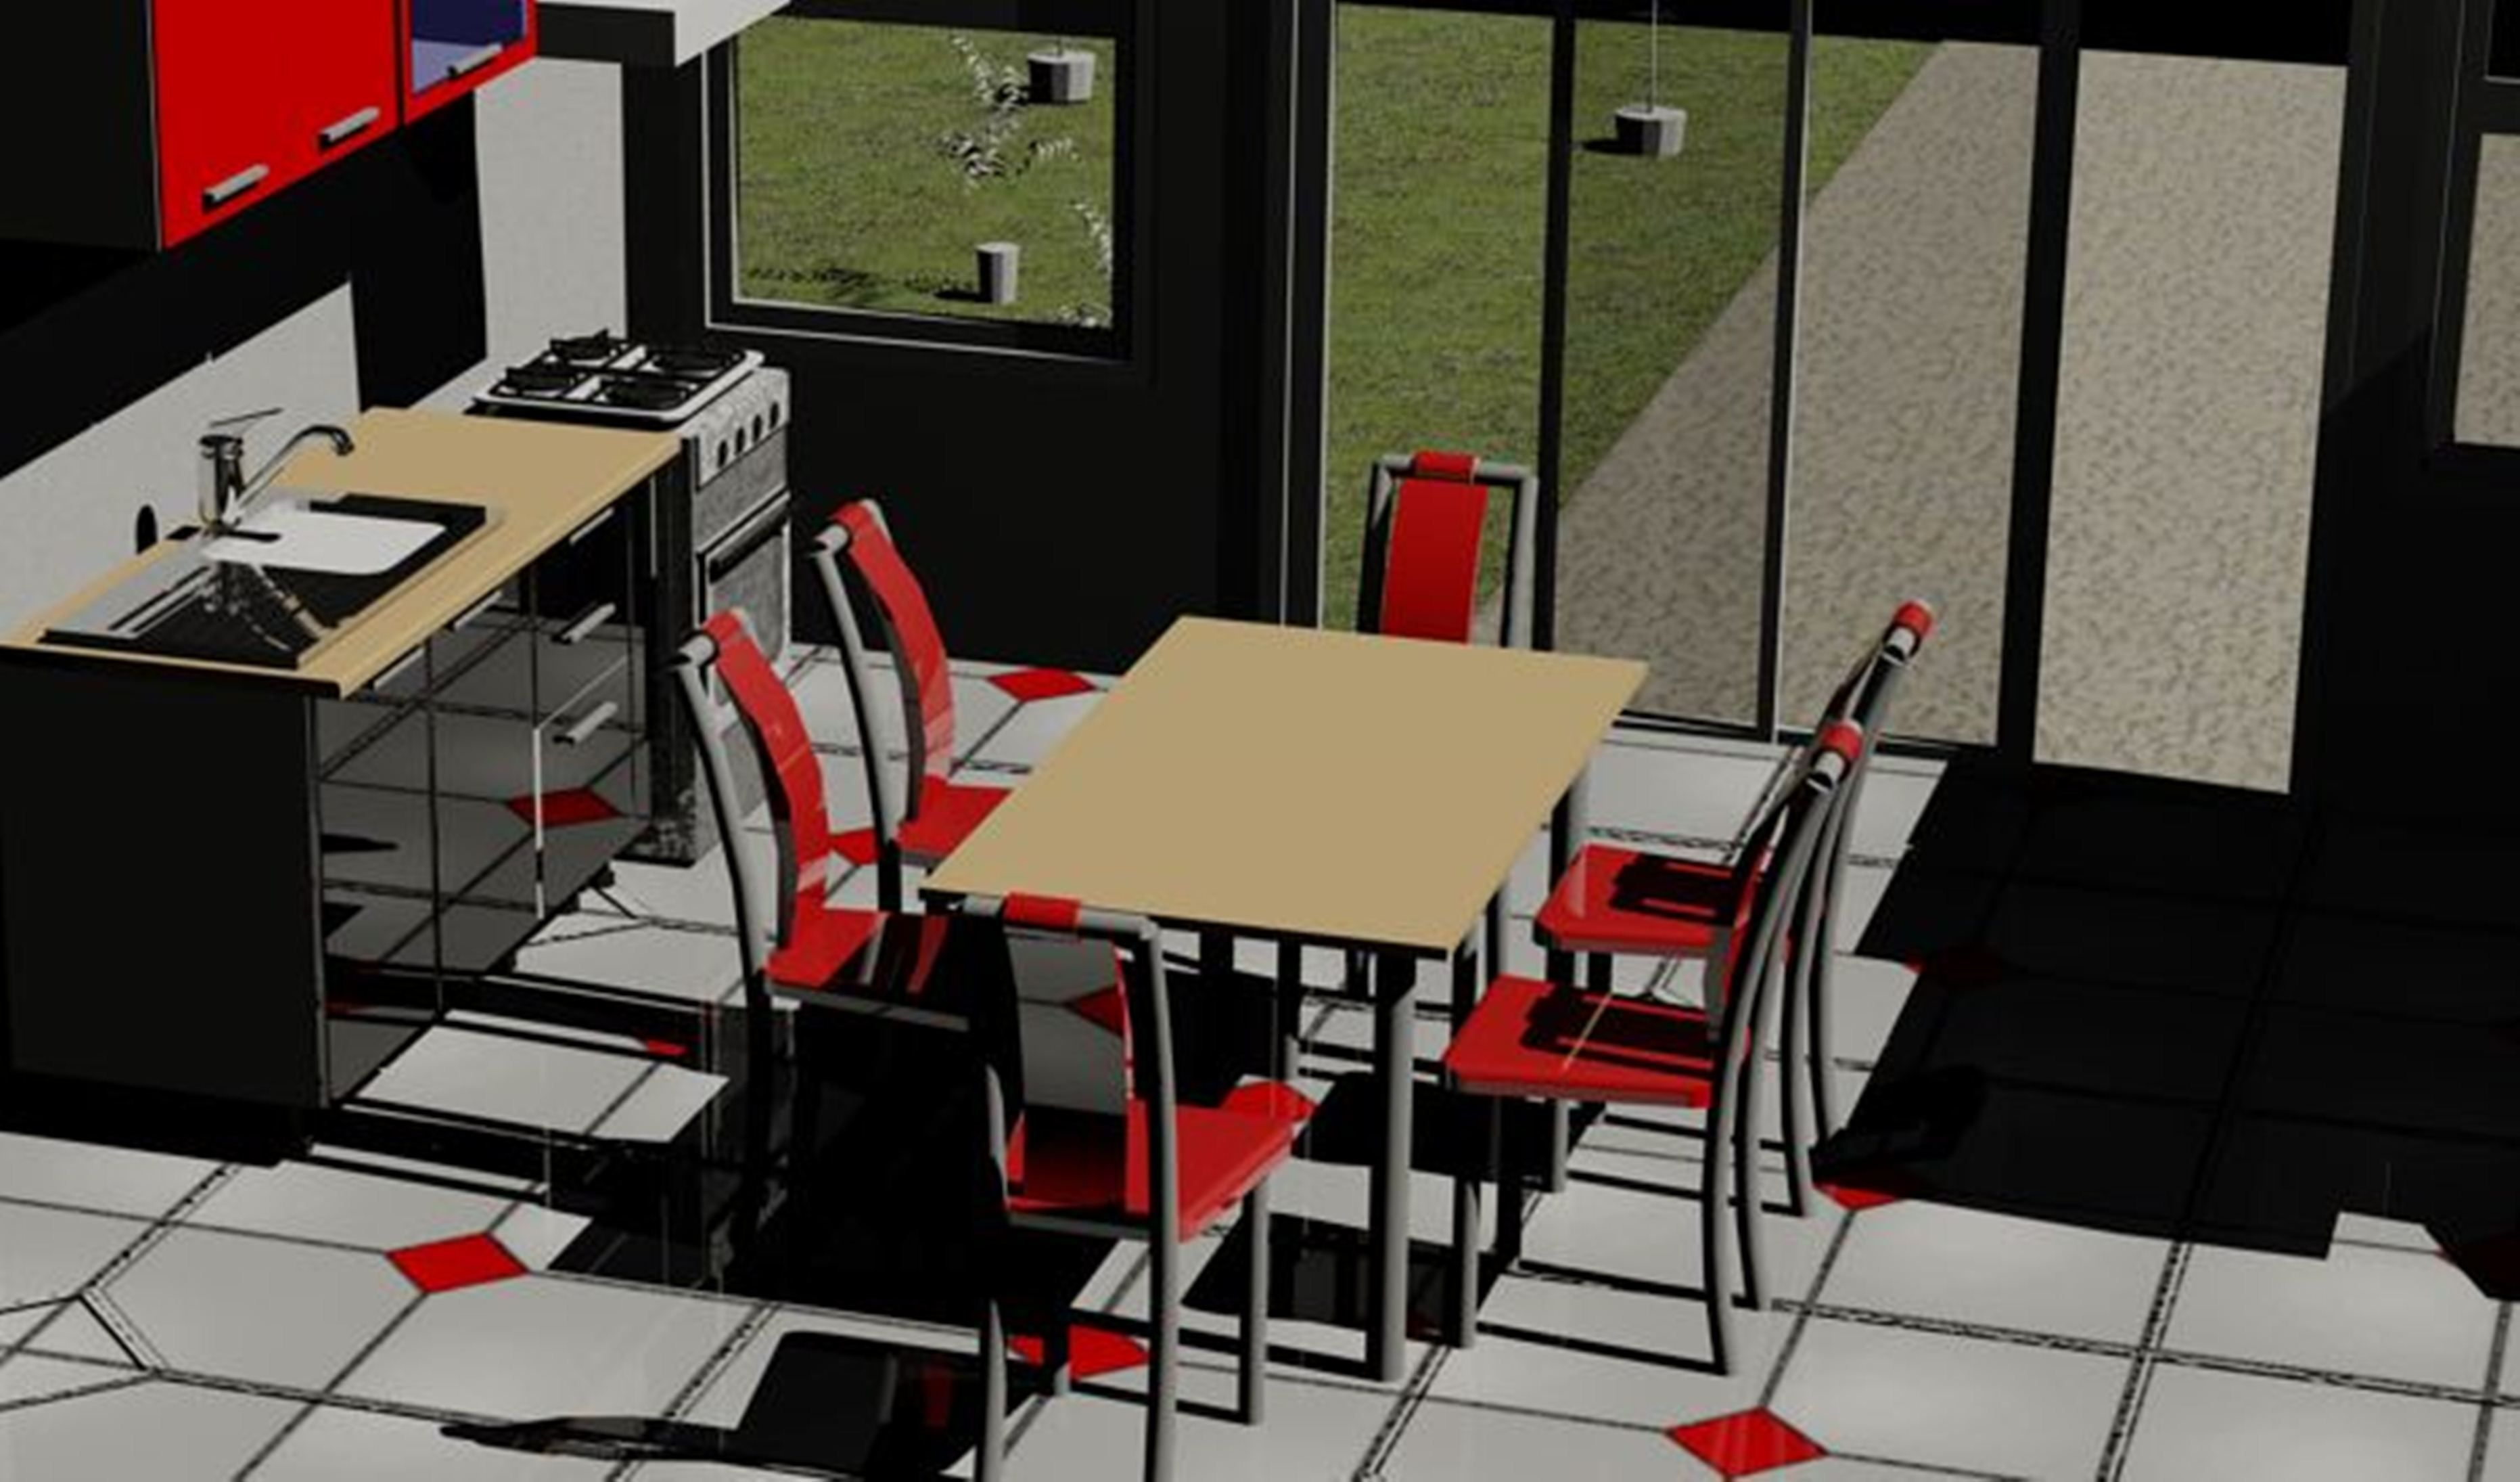 Restaurant Kitchen 3d Model red kitchen ver 1 3d model | cgtrader